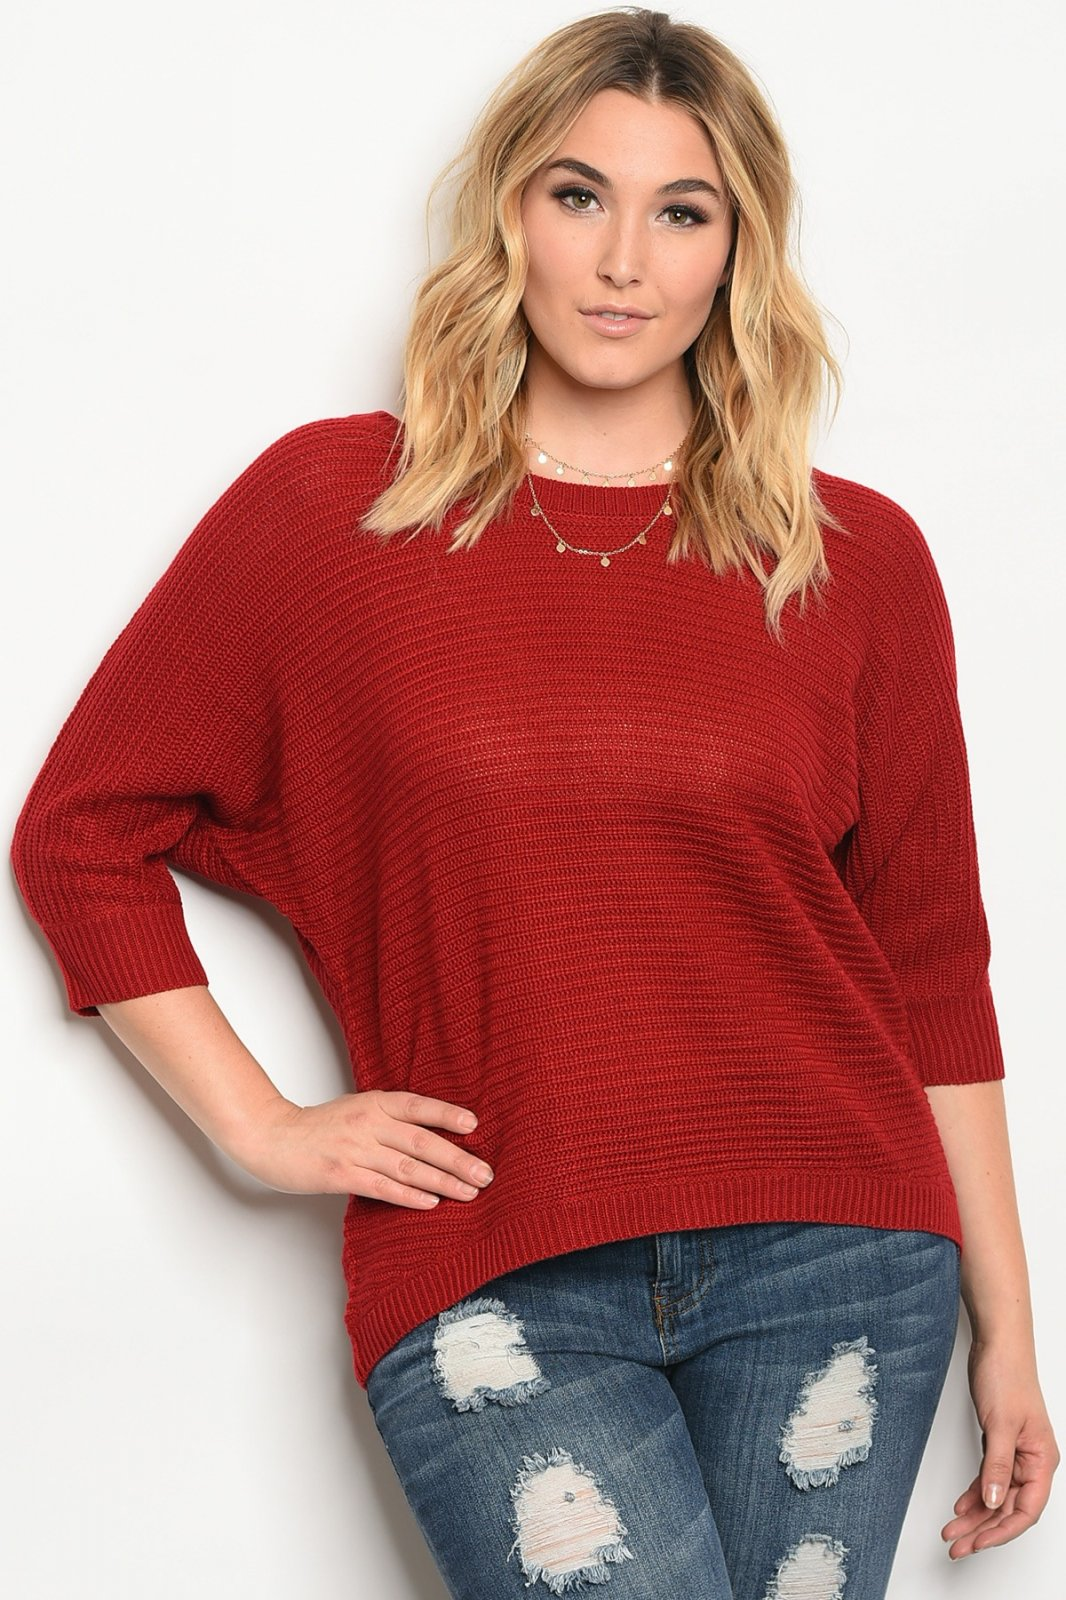 BURGUNDY PLUS SIZE TOP